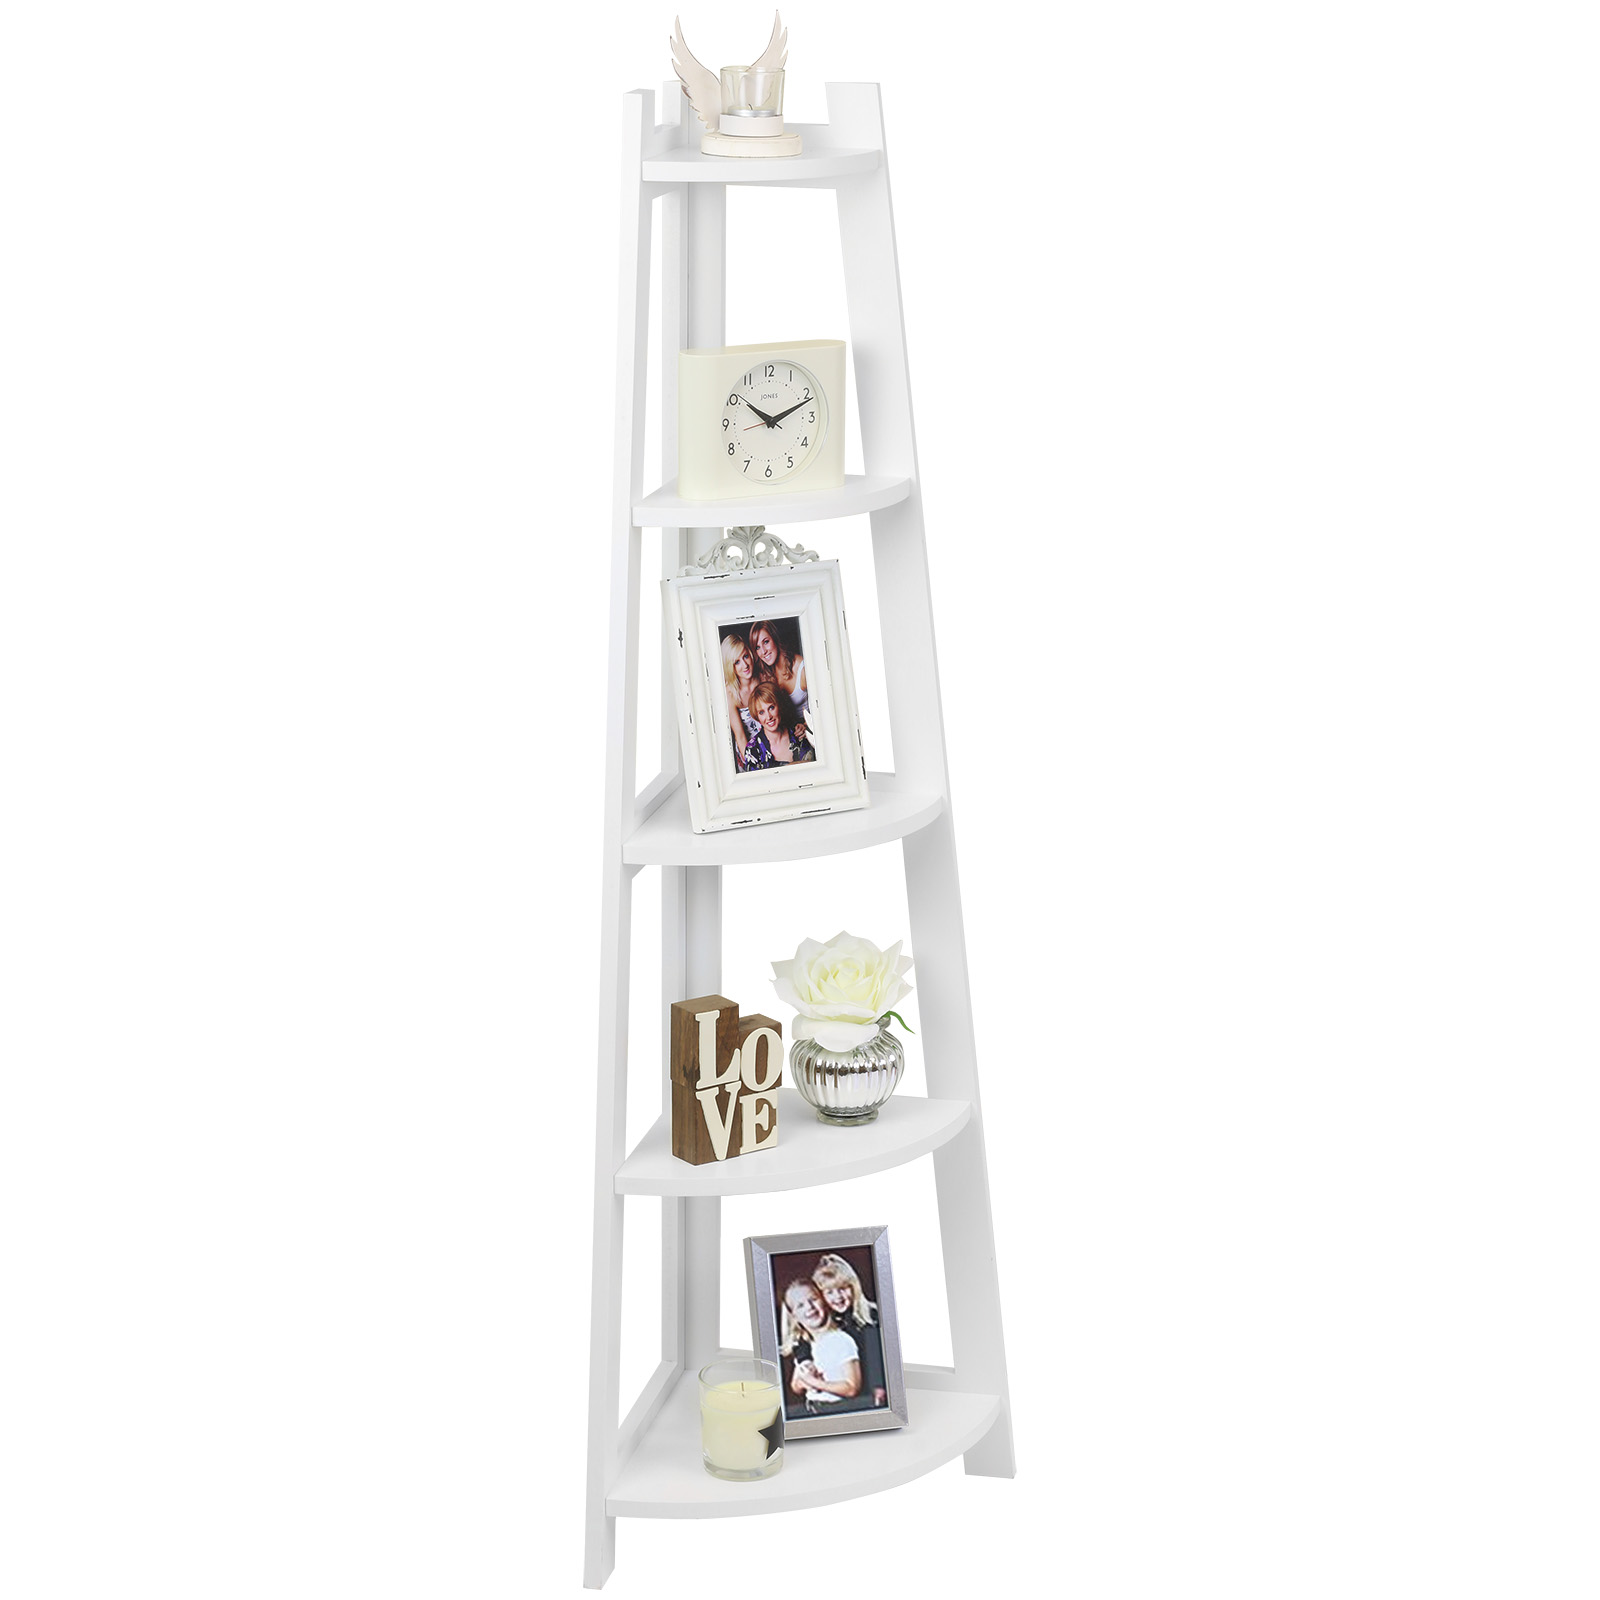 sentinel hartleys etagere bibliotheque echelle meuble rangement coin angle 5 etages blanc